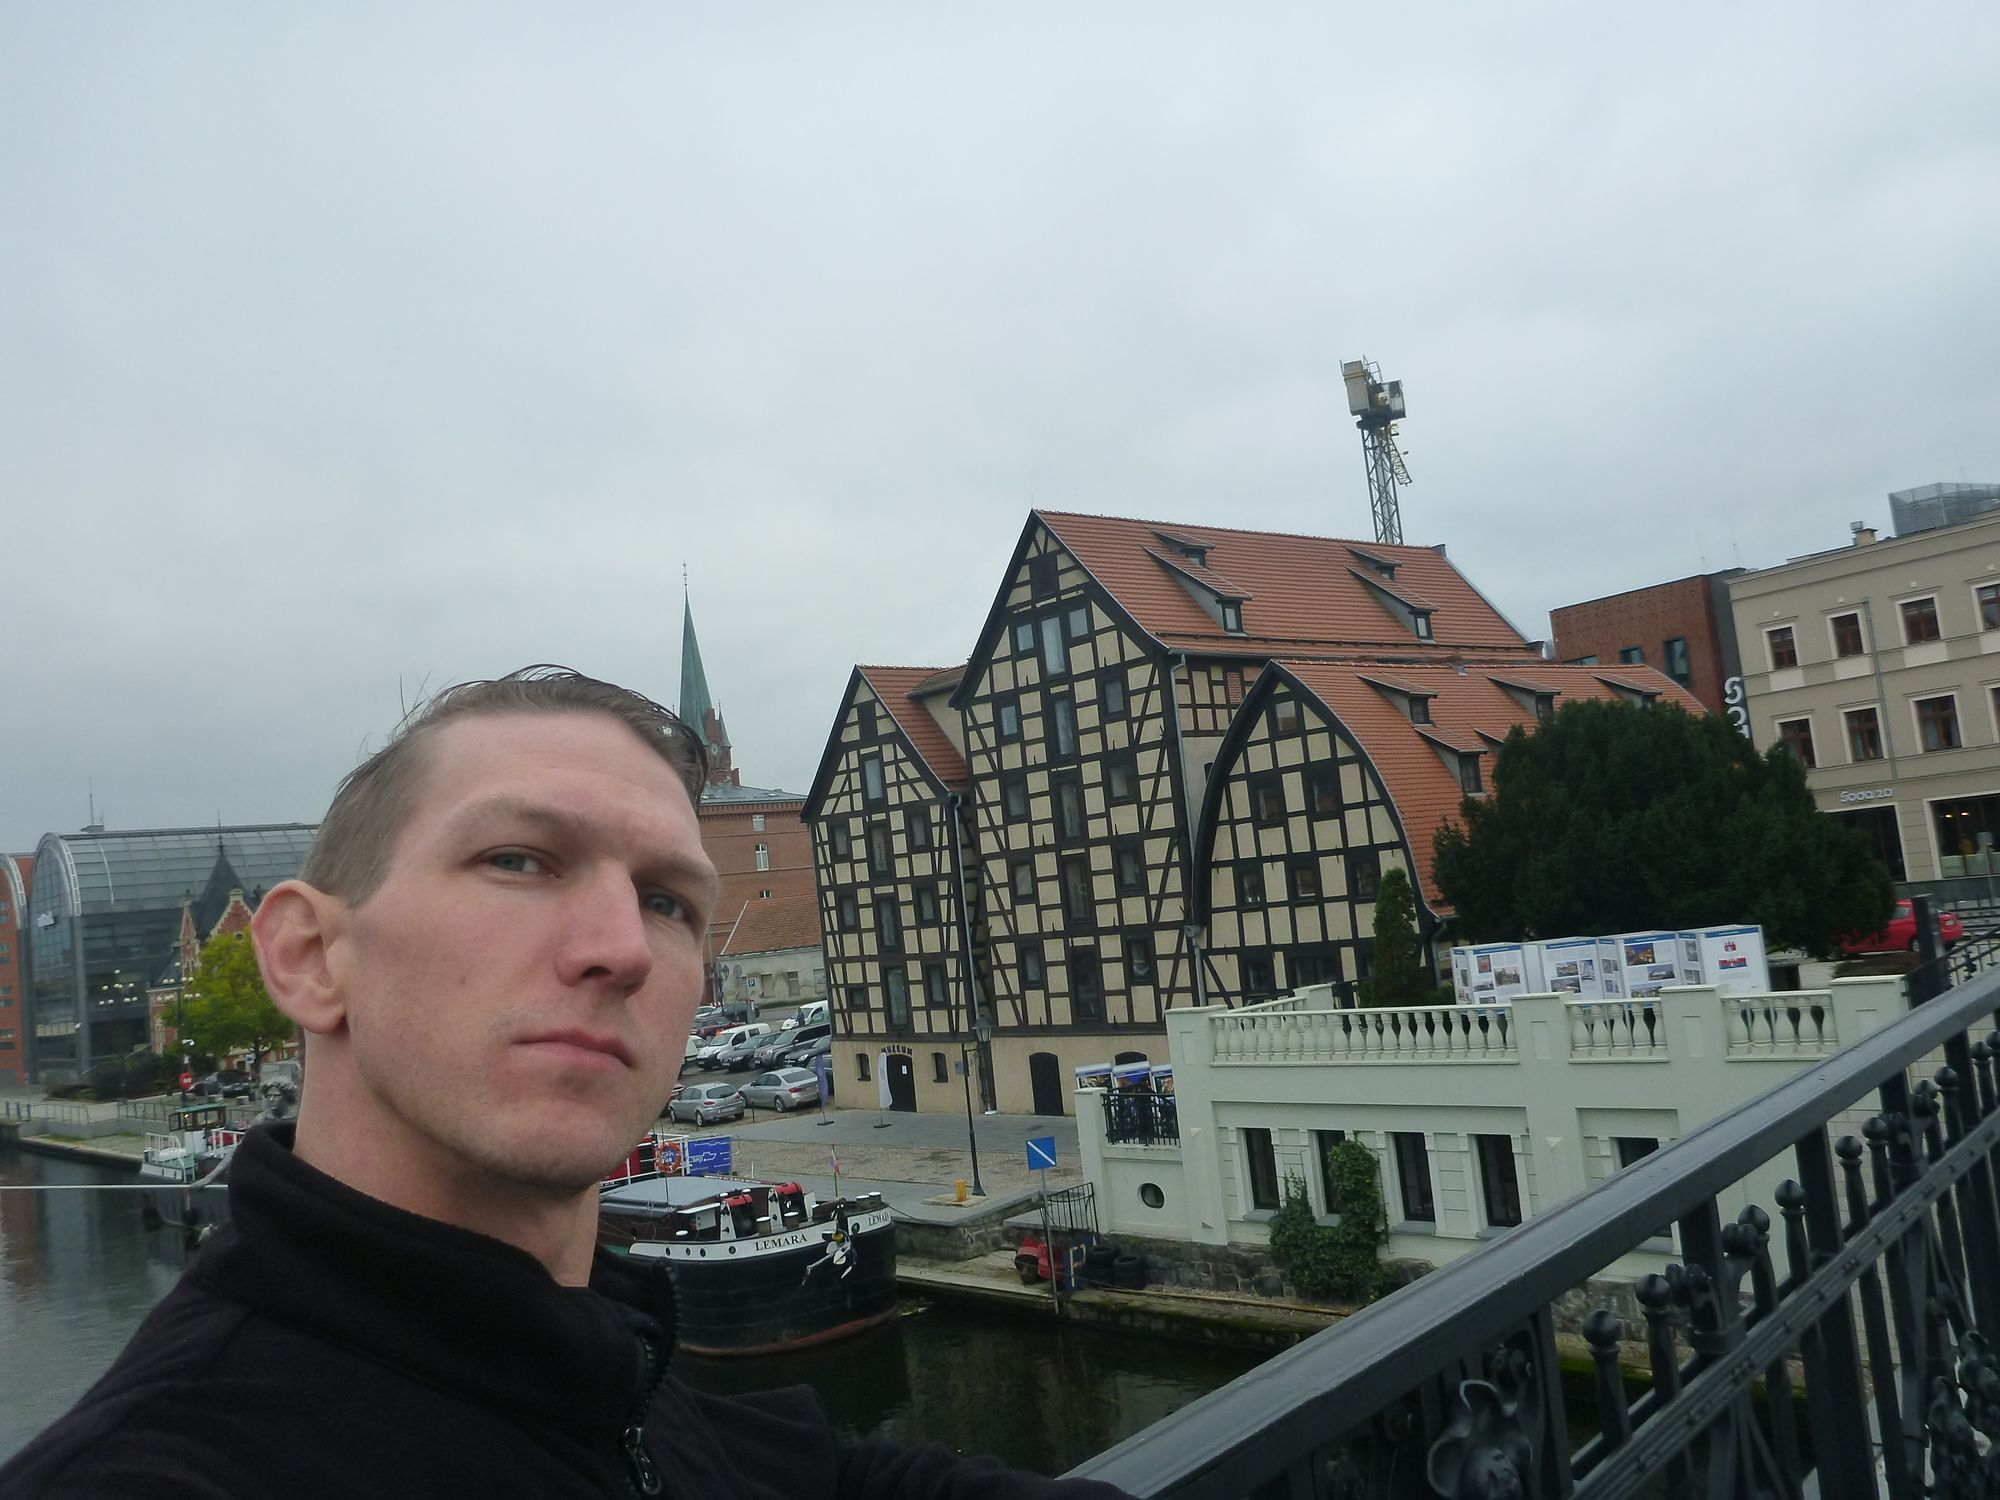 Backpacking in Poland: Top 19 Sights in Bydgoszcz